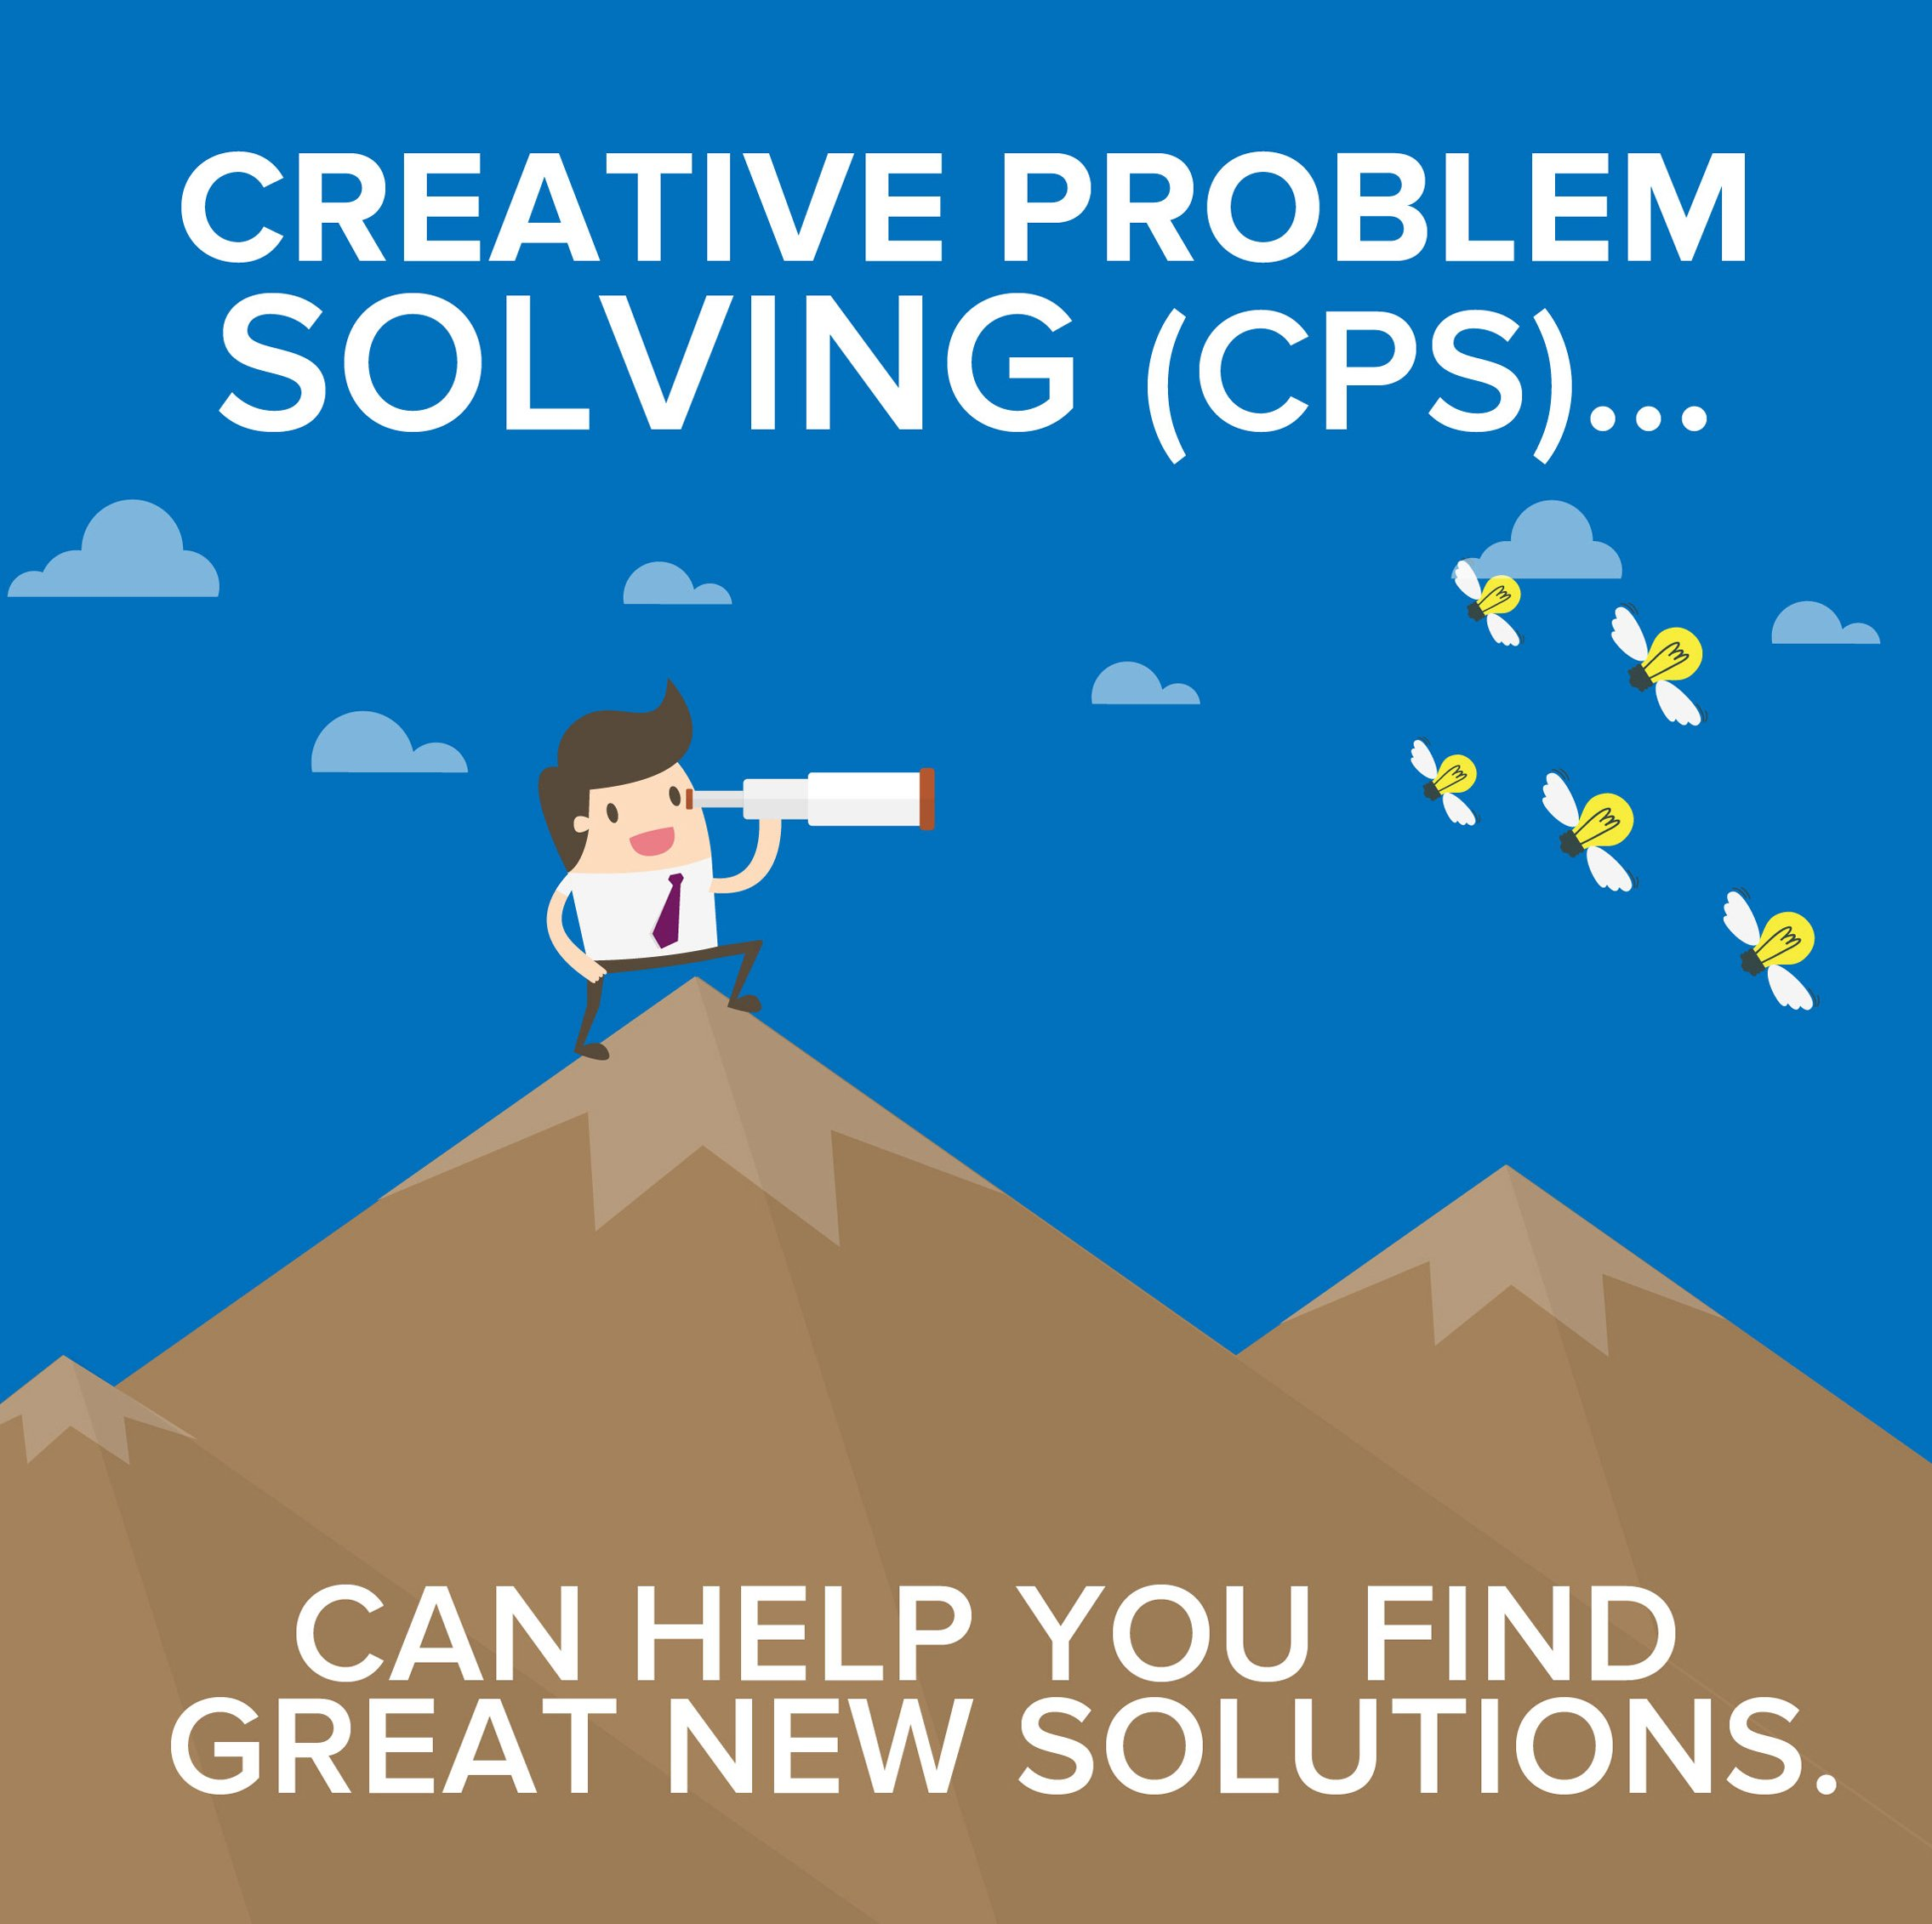 Creative Problem Solving - Creativity Tools From MindTools.com